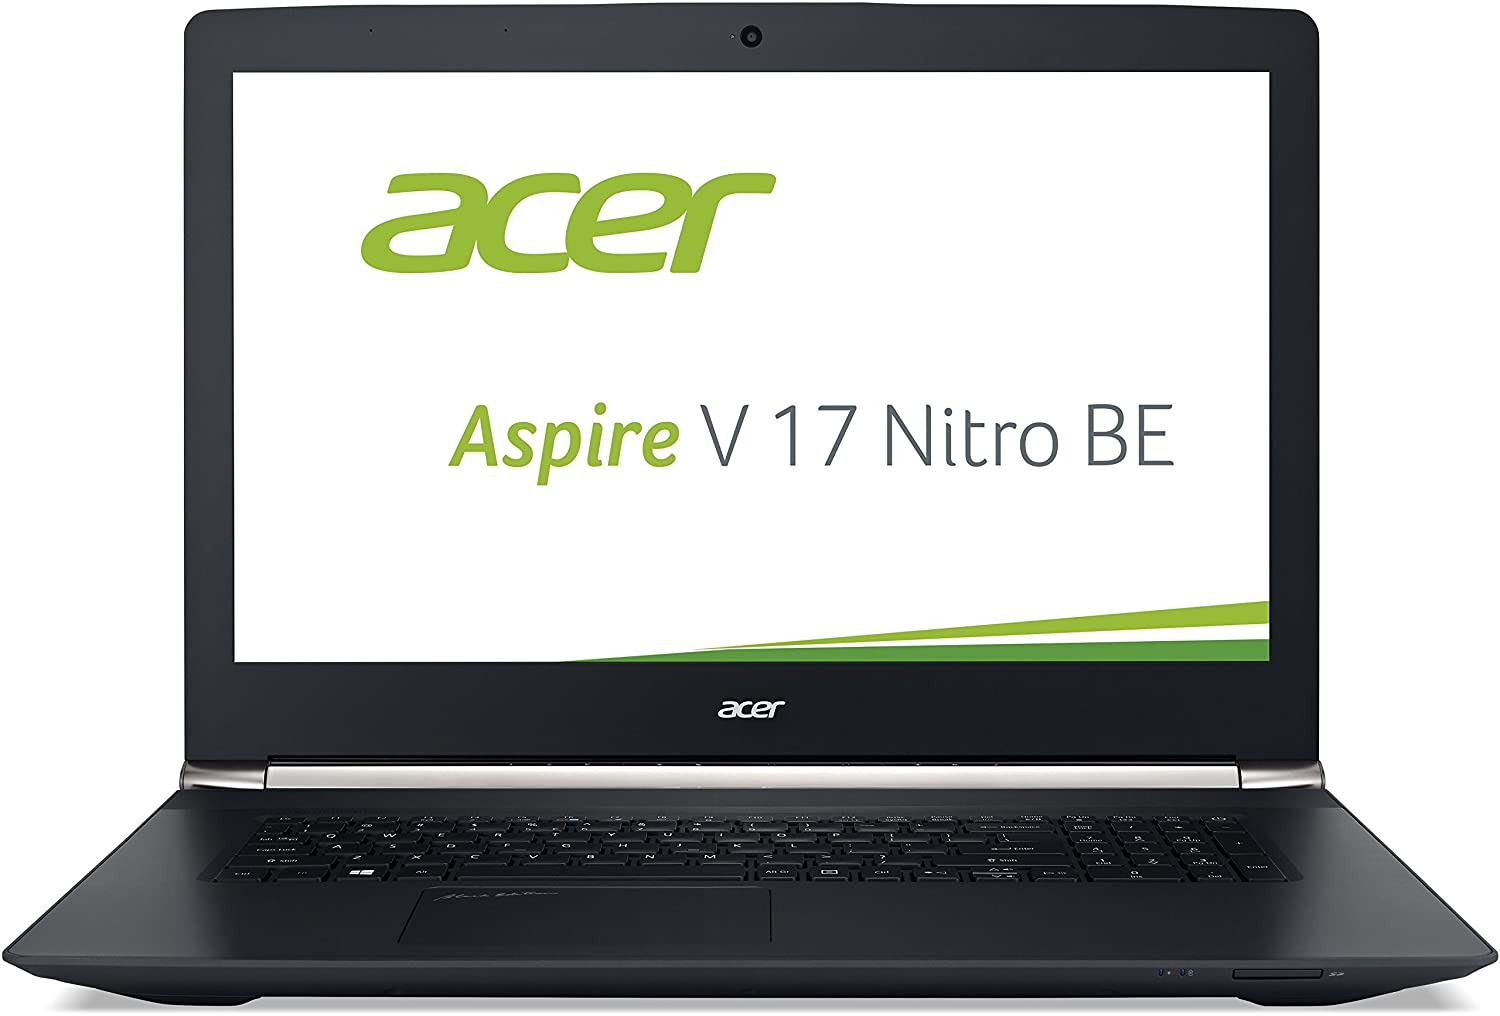 Acer Aspire VN7-792G Intel Graphics Drivers for Windows 10